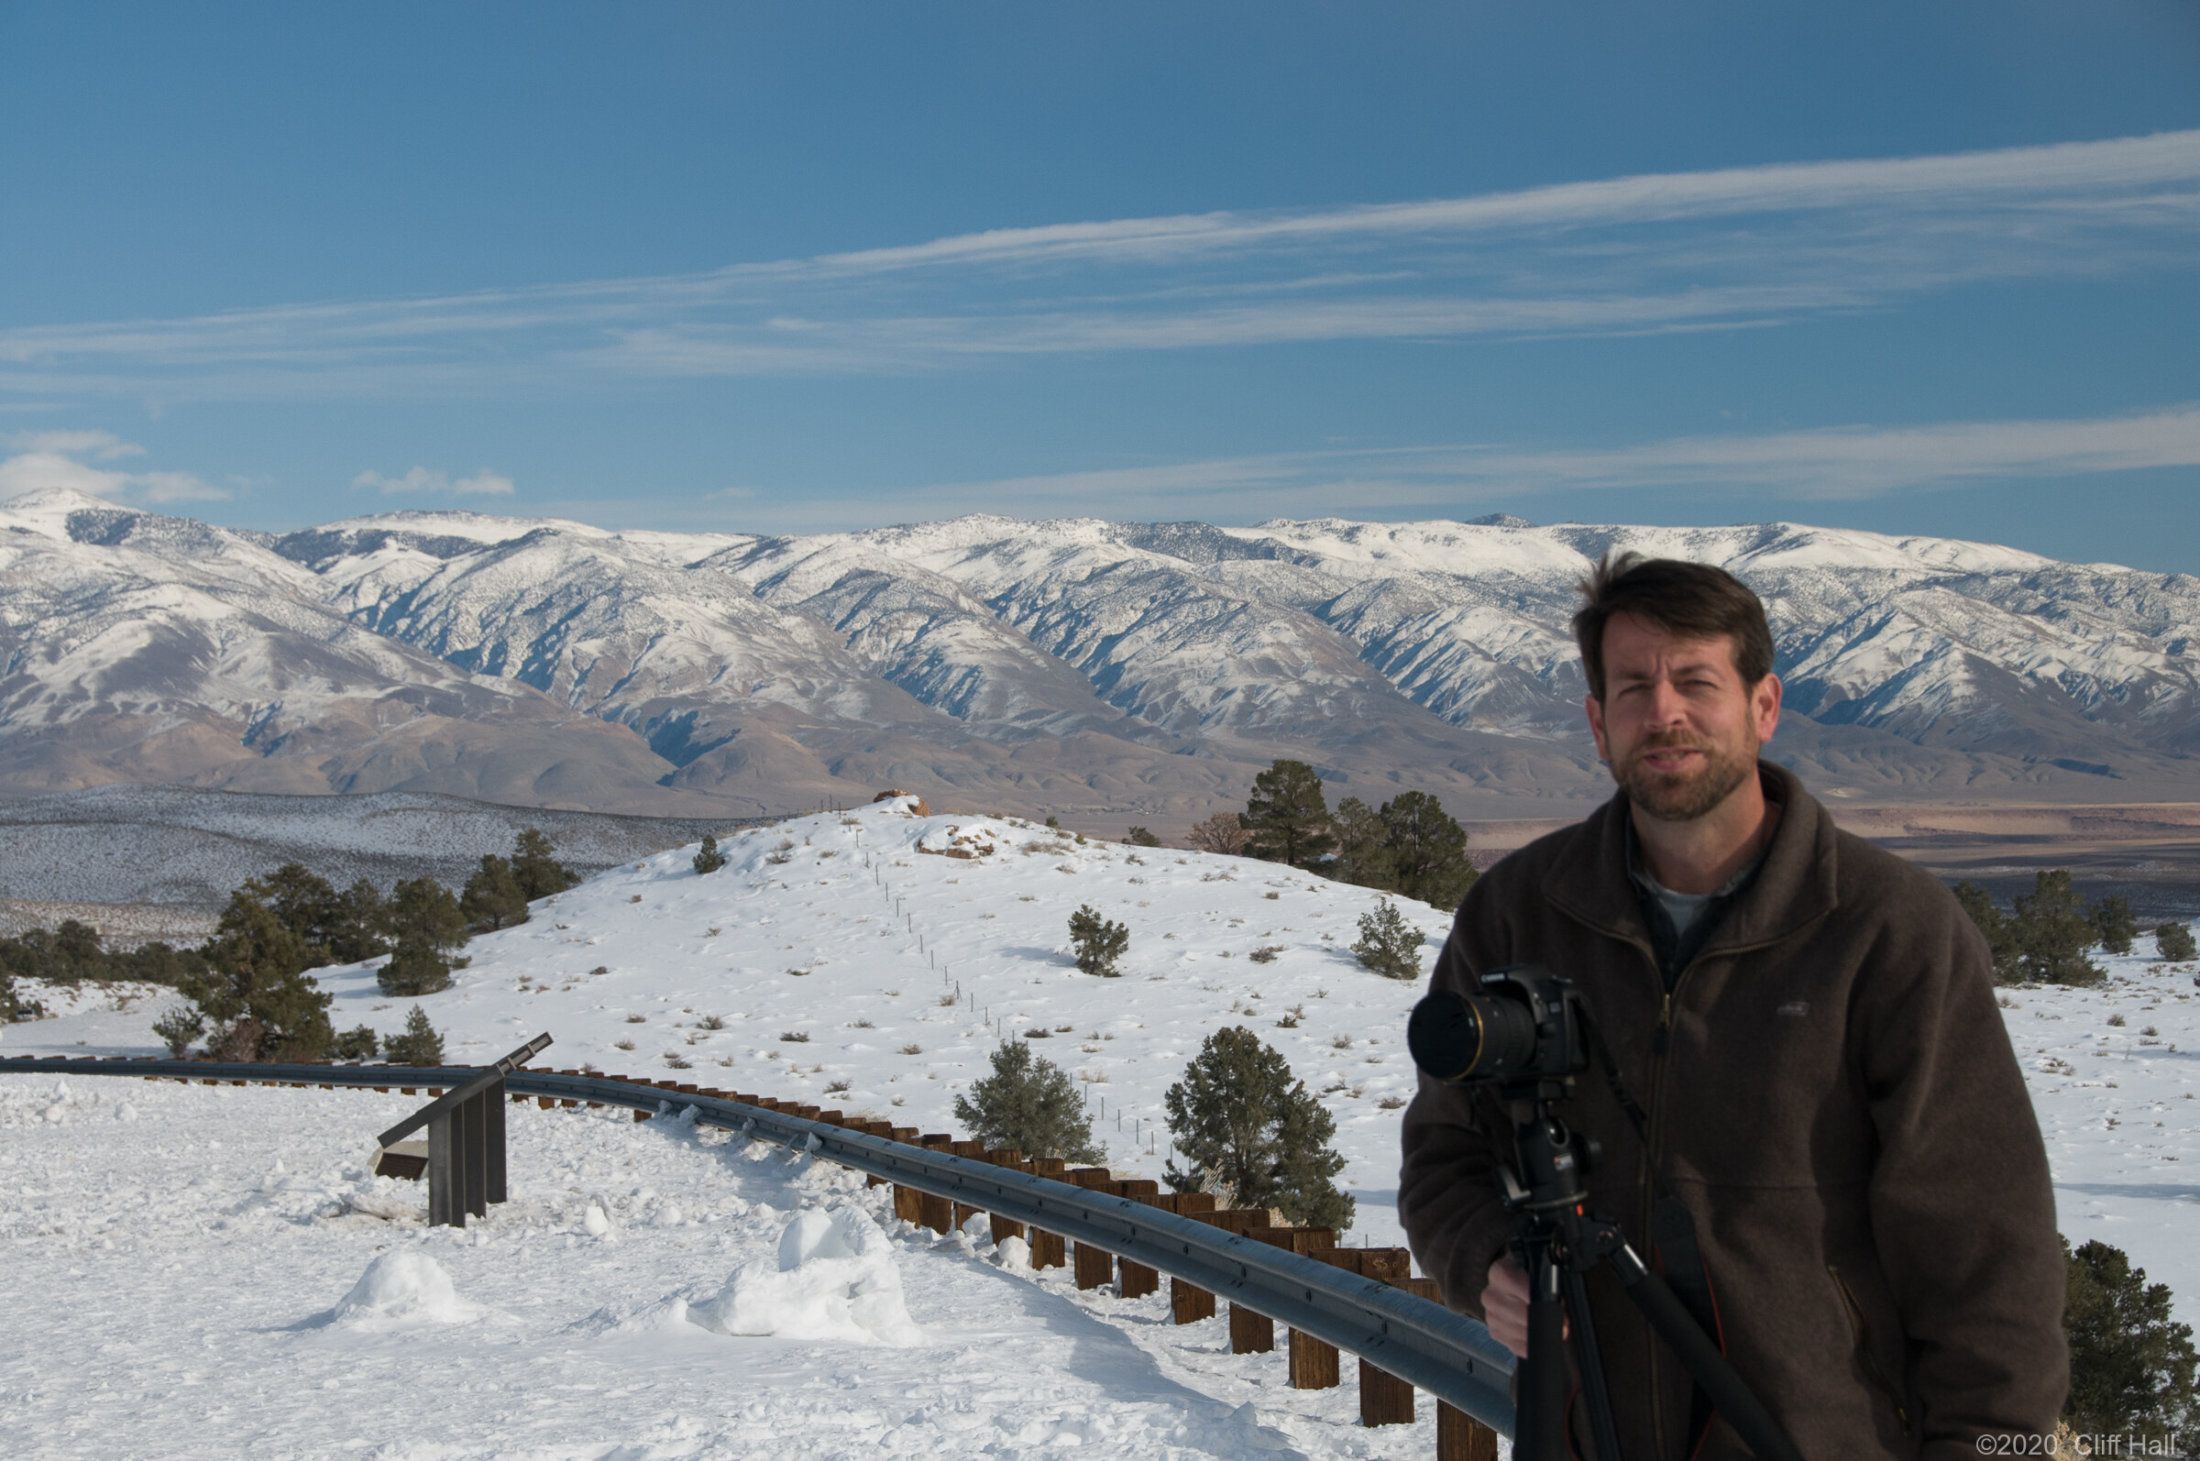 Steve with a White Mountains backdrop, CA